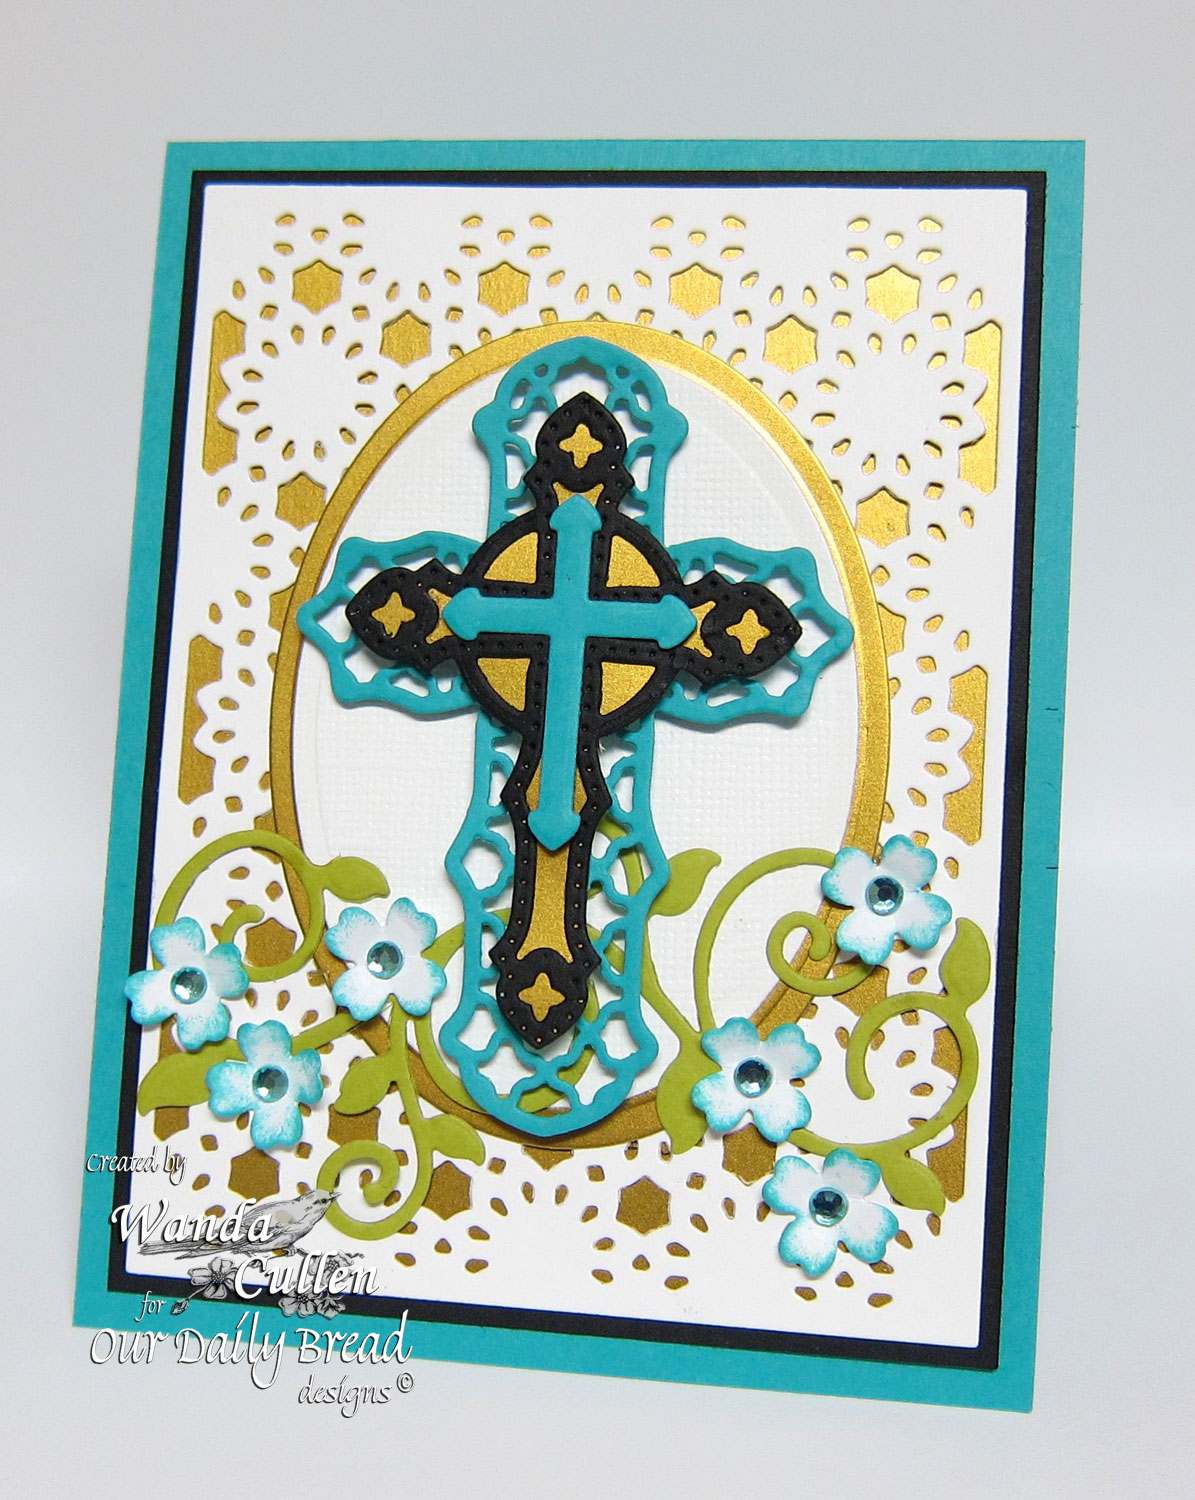 Our Daily Bread Designs Custom Ornamental Crosses Die, ODBD Custom Daisy Chain Background Die, ODBD Custom Fancy Foliage Die